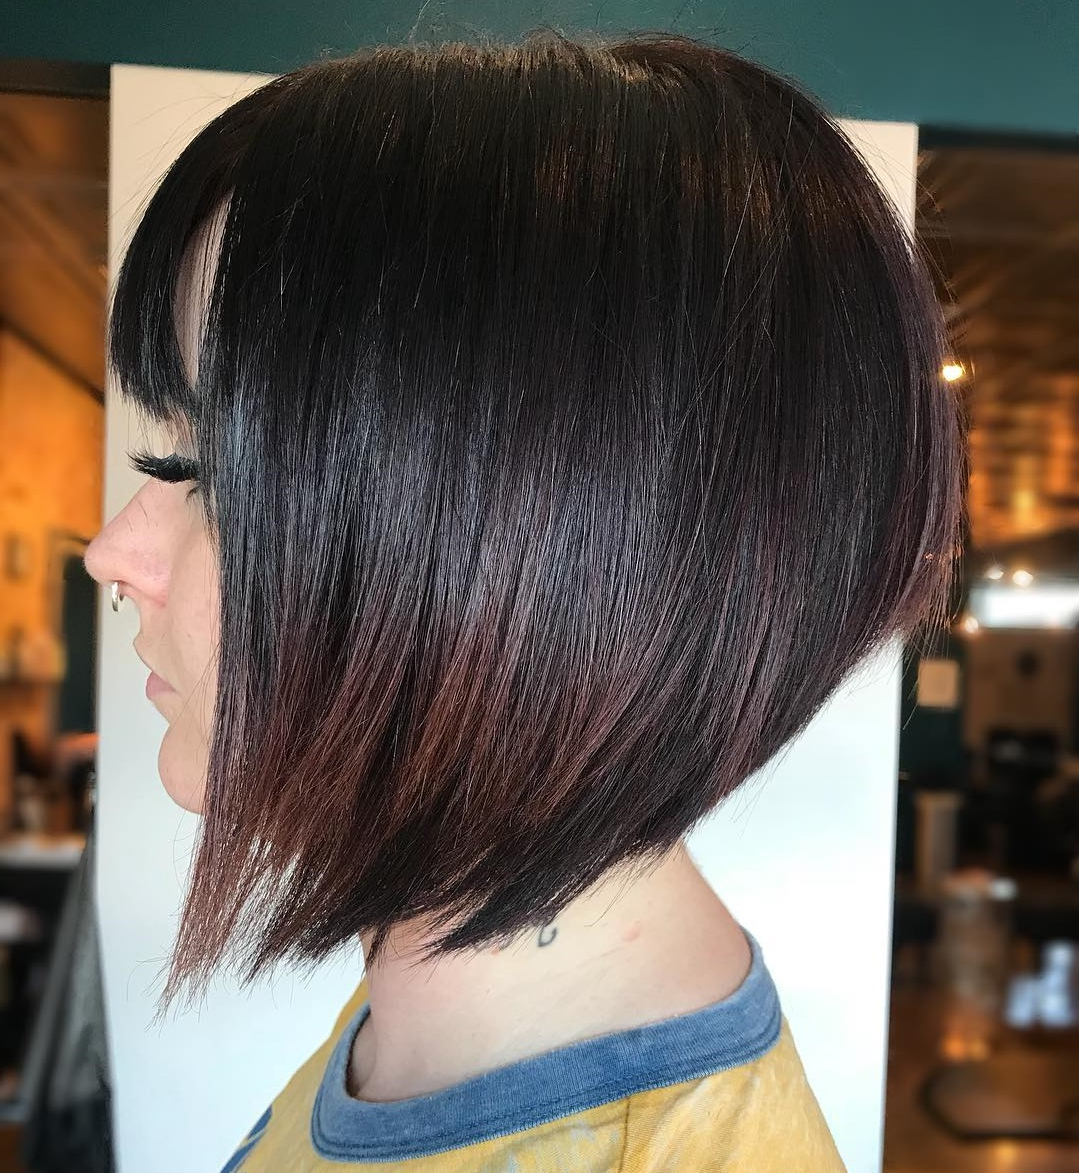 45 Short Hairstyles For Fine Hair To Rock In 2019 Inside Short Sliced Inverted Bob Hairstyles (View 4 of 20)